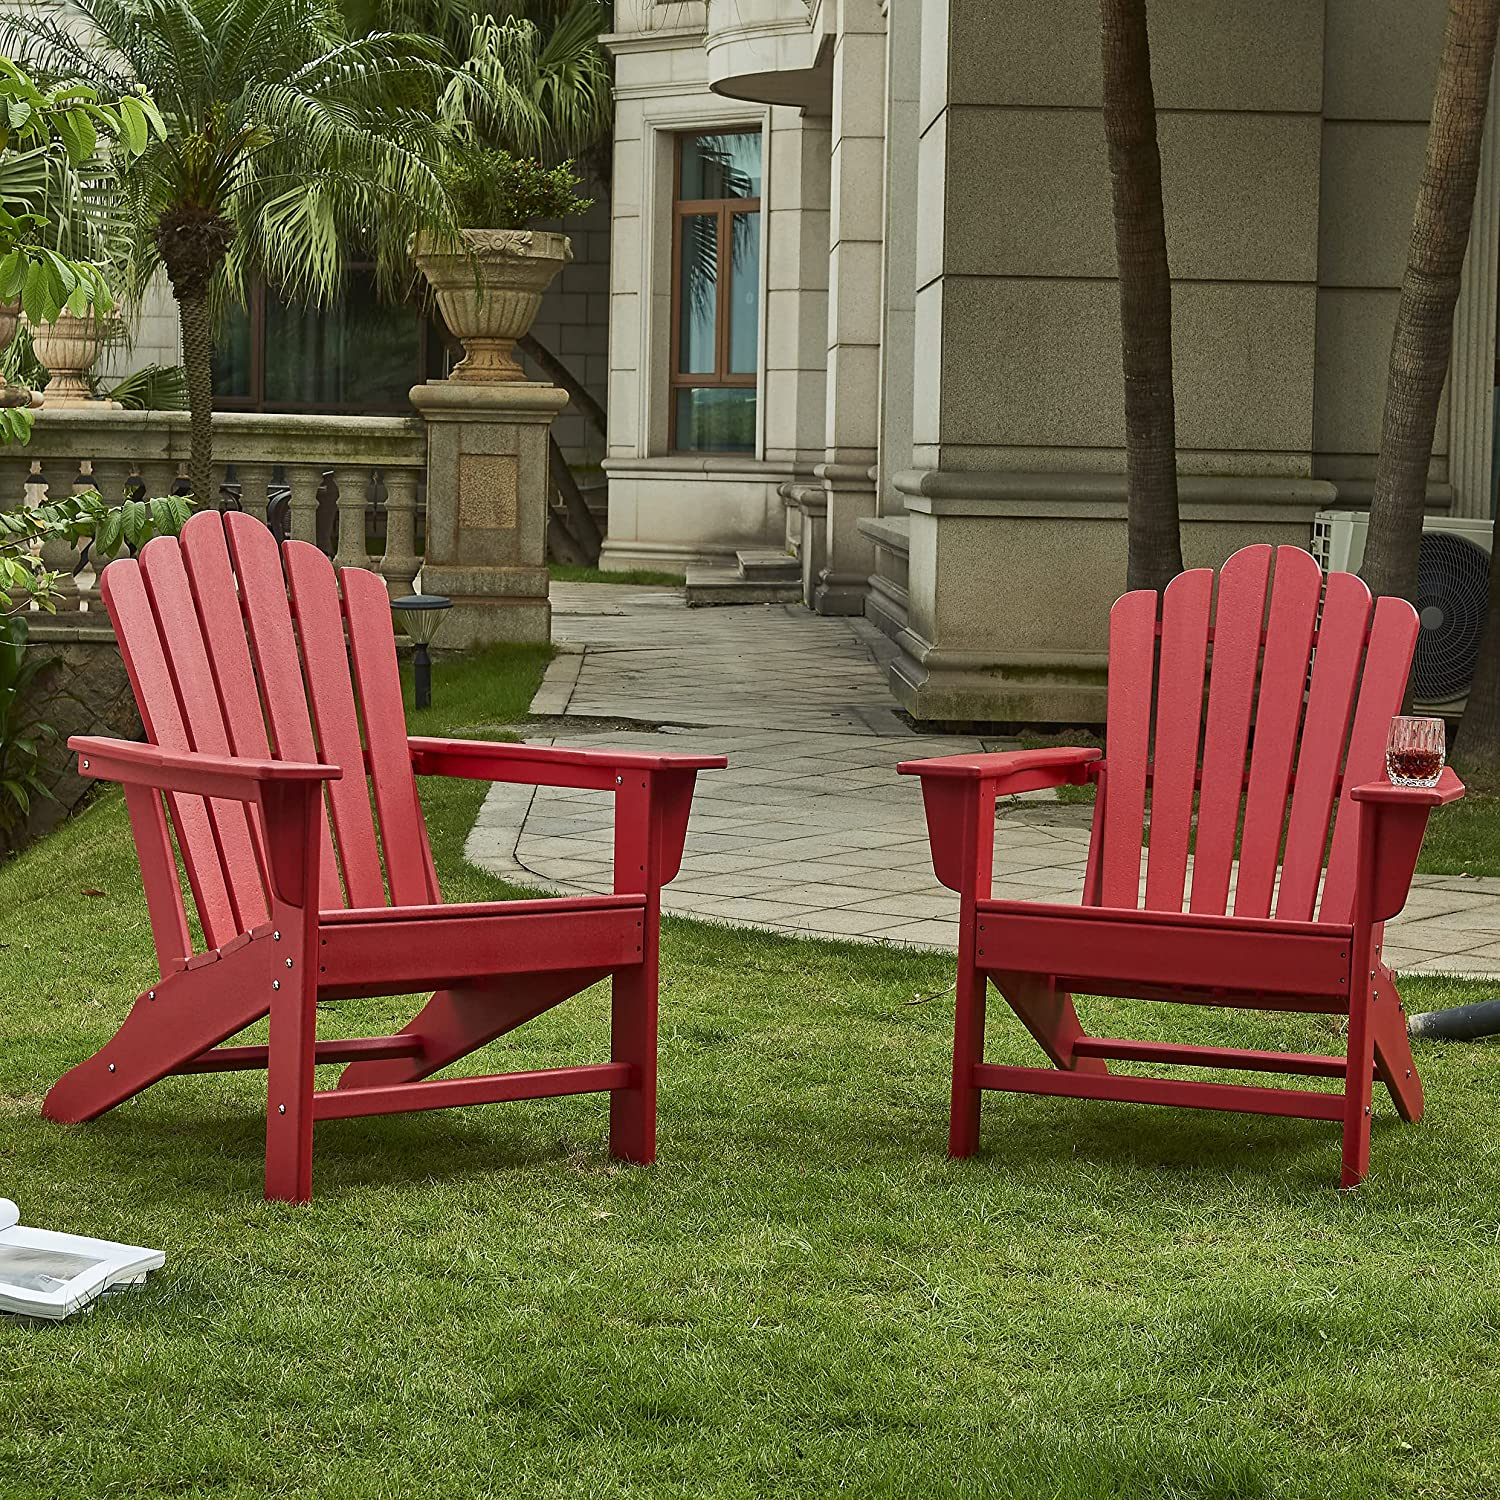 Ehomexpert Classic Outdoor Adirondack Chair Set of 2 for Garden Porch Patio Deck Backyard, Weather Resistant Accent Furniture, Red